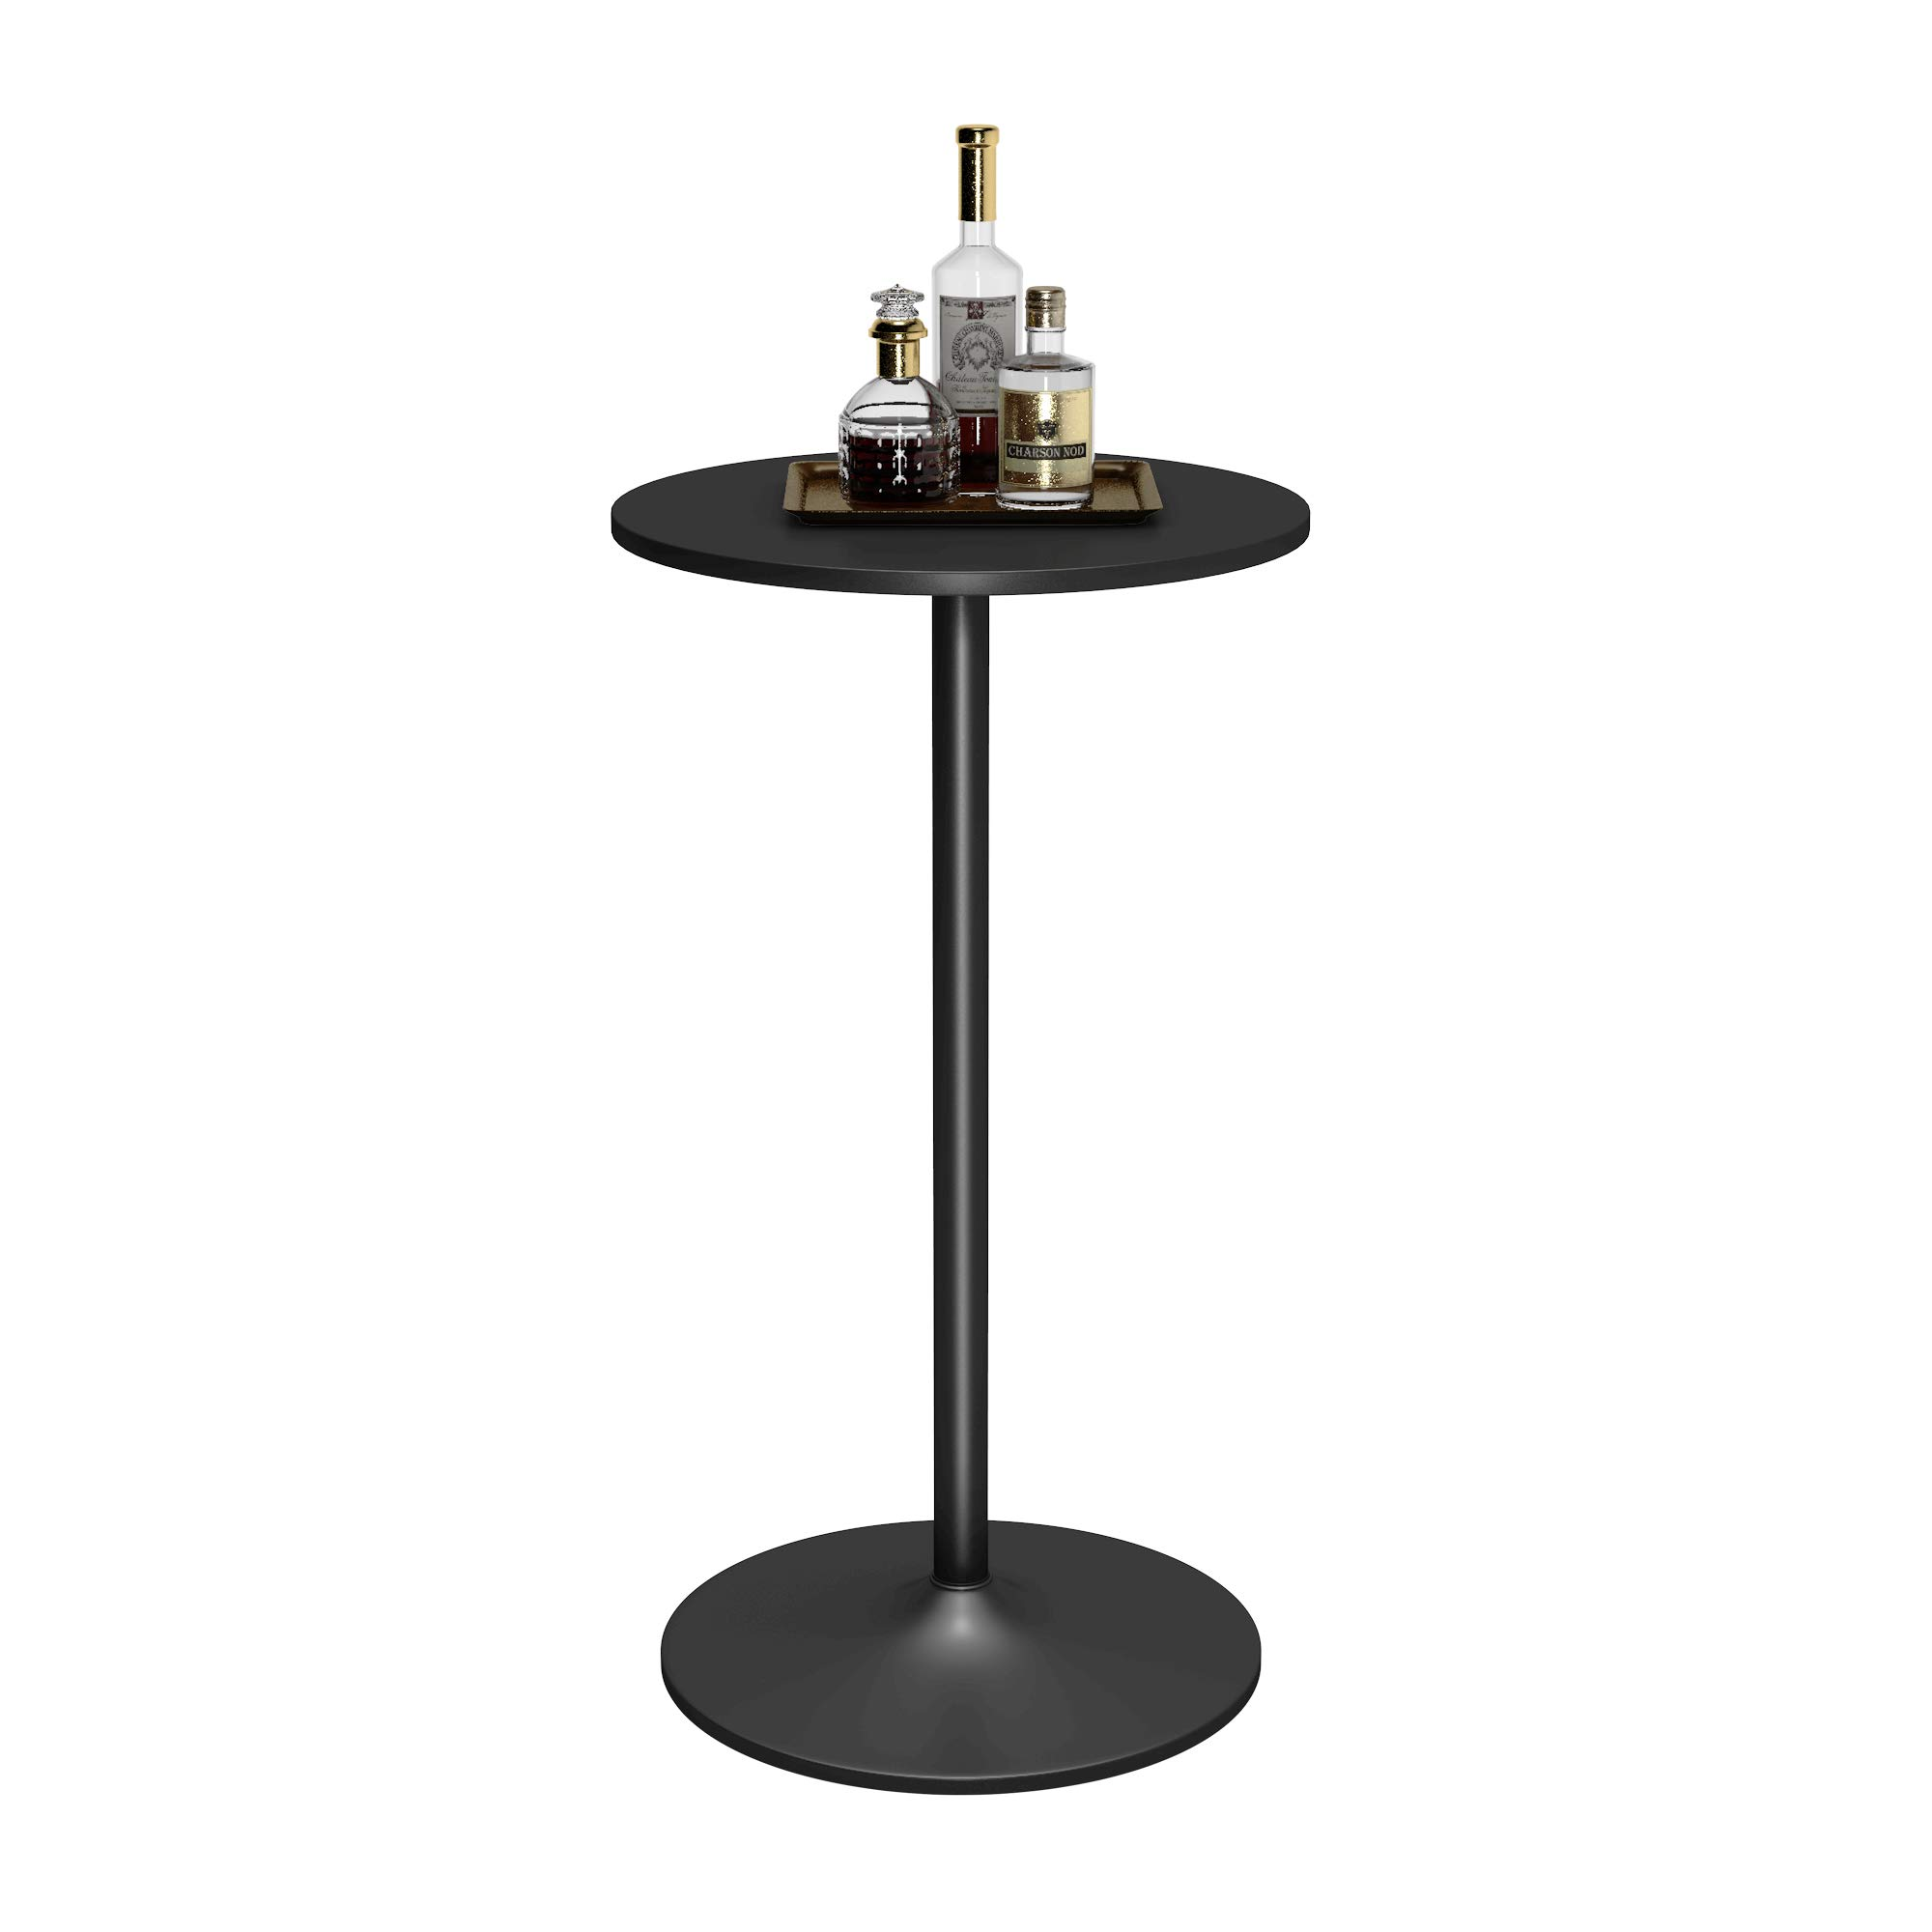 COSTWAY Round Pub Bar Table with MDF Top Meatal Base, Cocktail Table 42.5-Inch Height, Counter Height Bistro Table, for Pub Bistro Kitchen, Black by COSTWAY